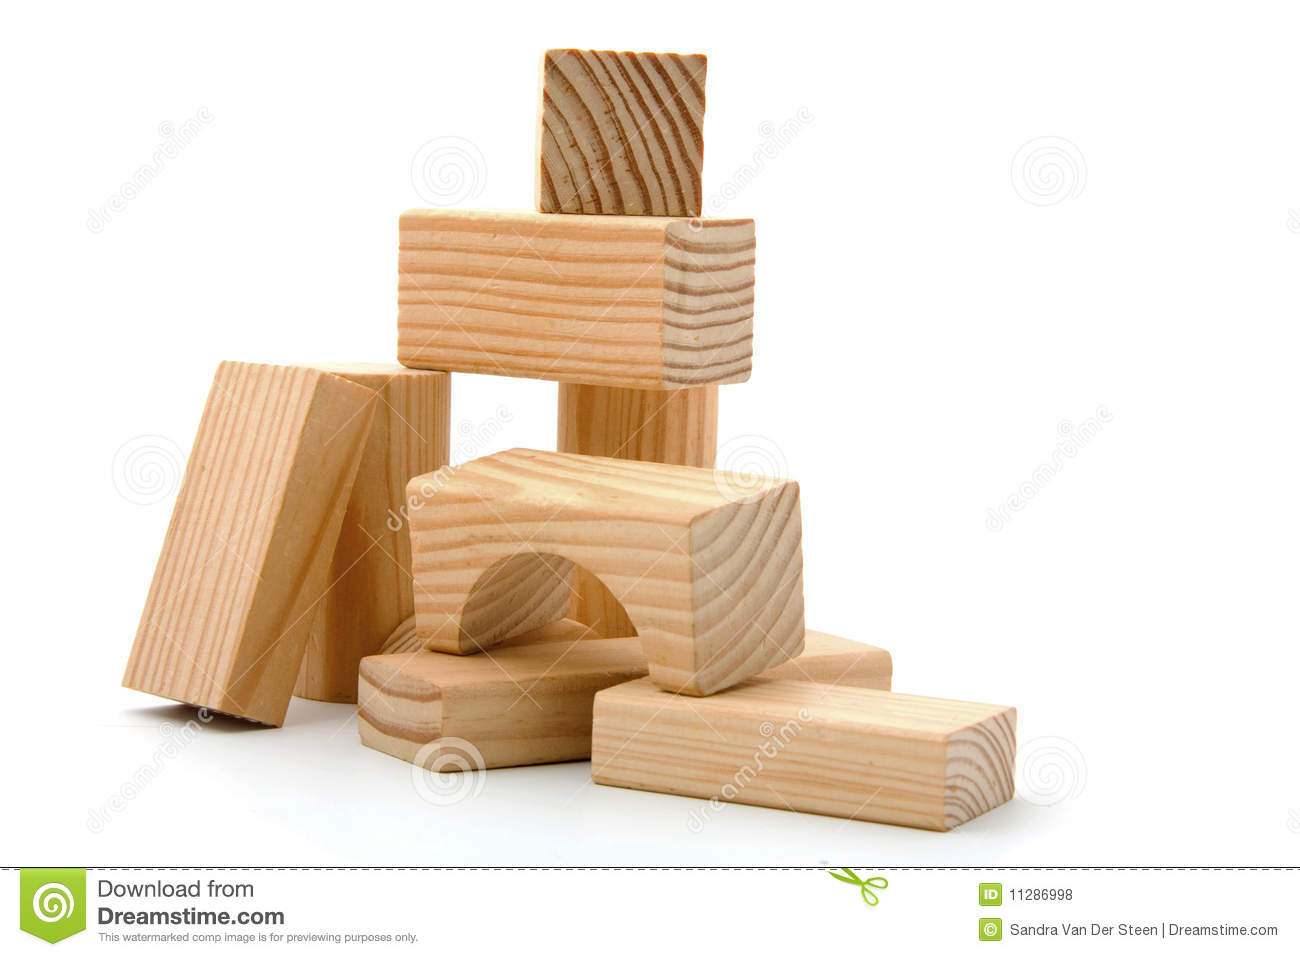 Blocks clipart wooden block.  collection of high